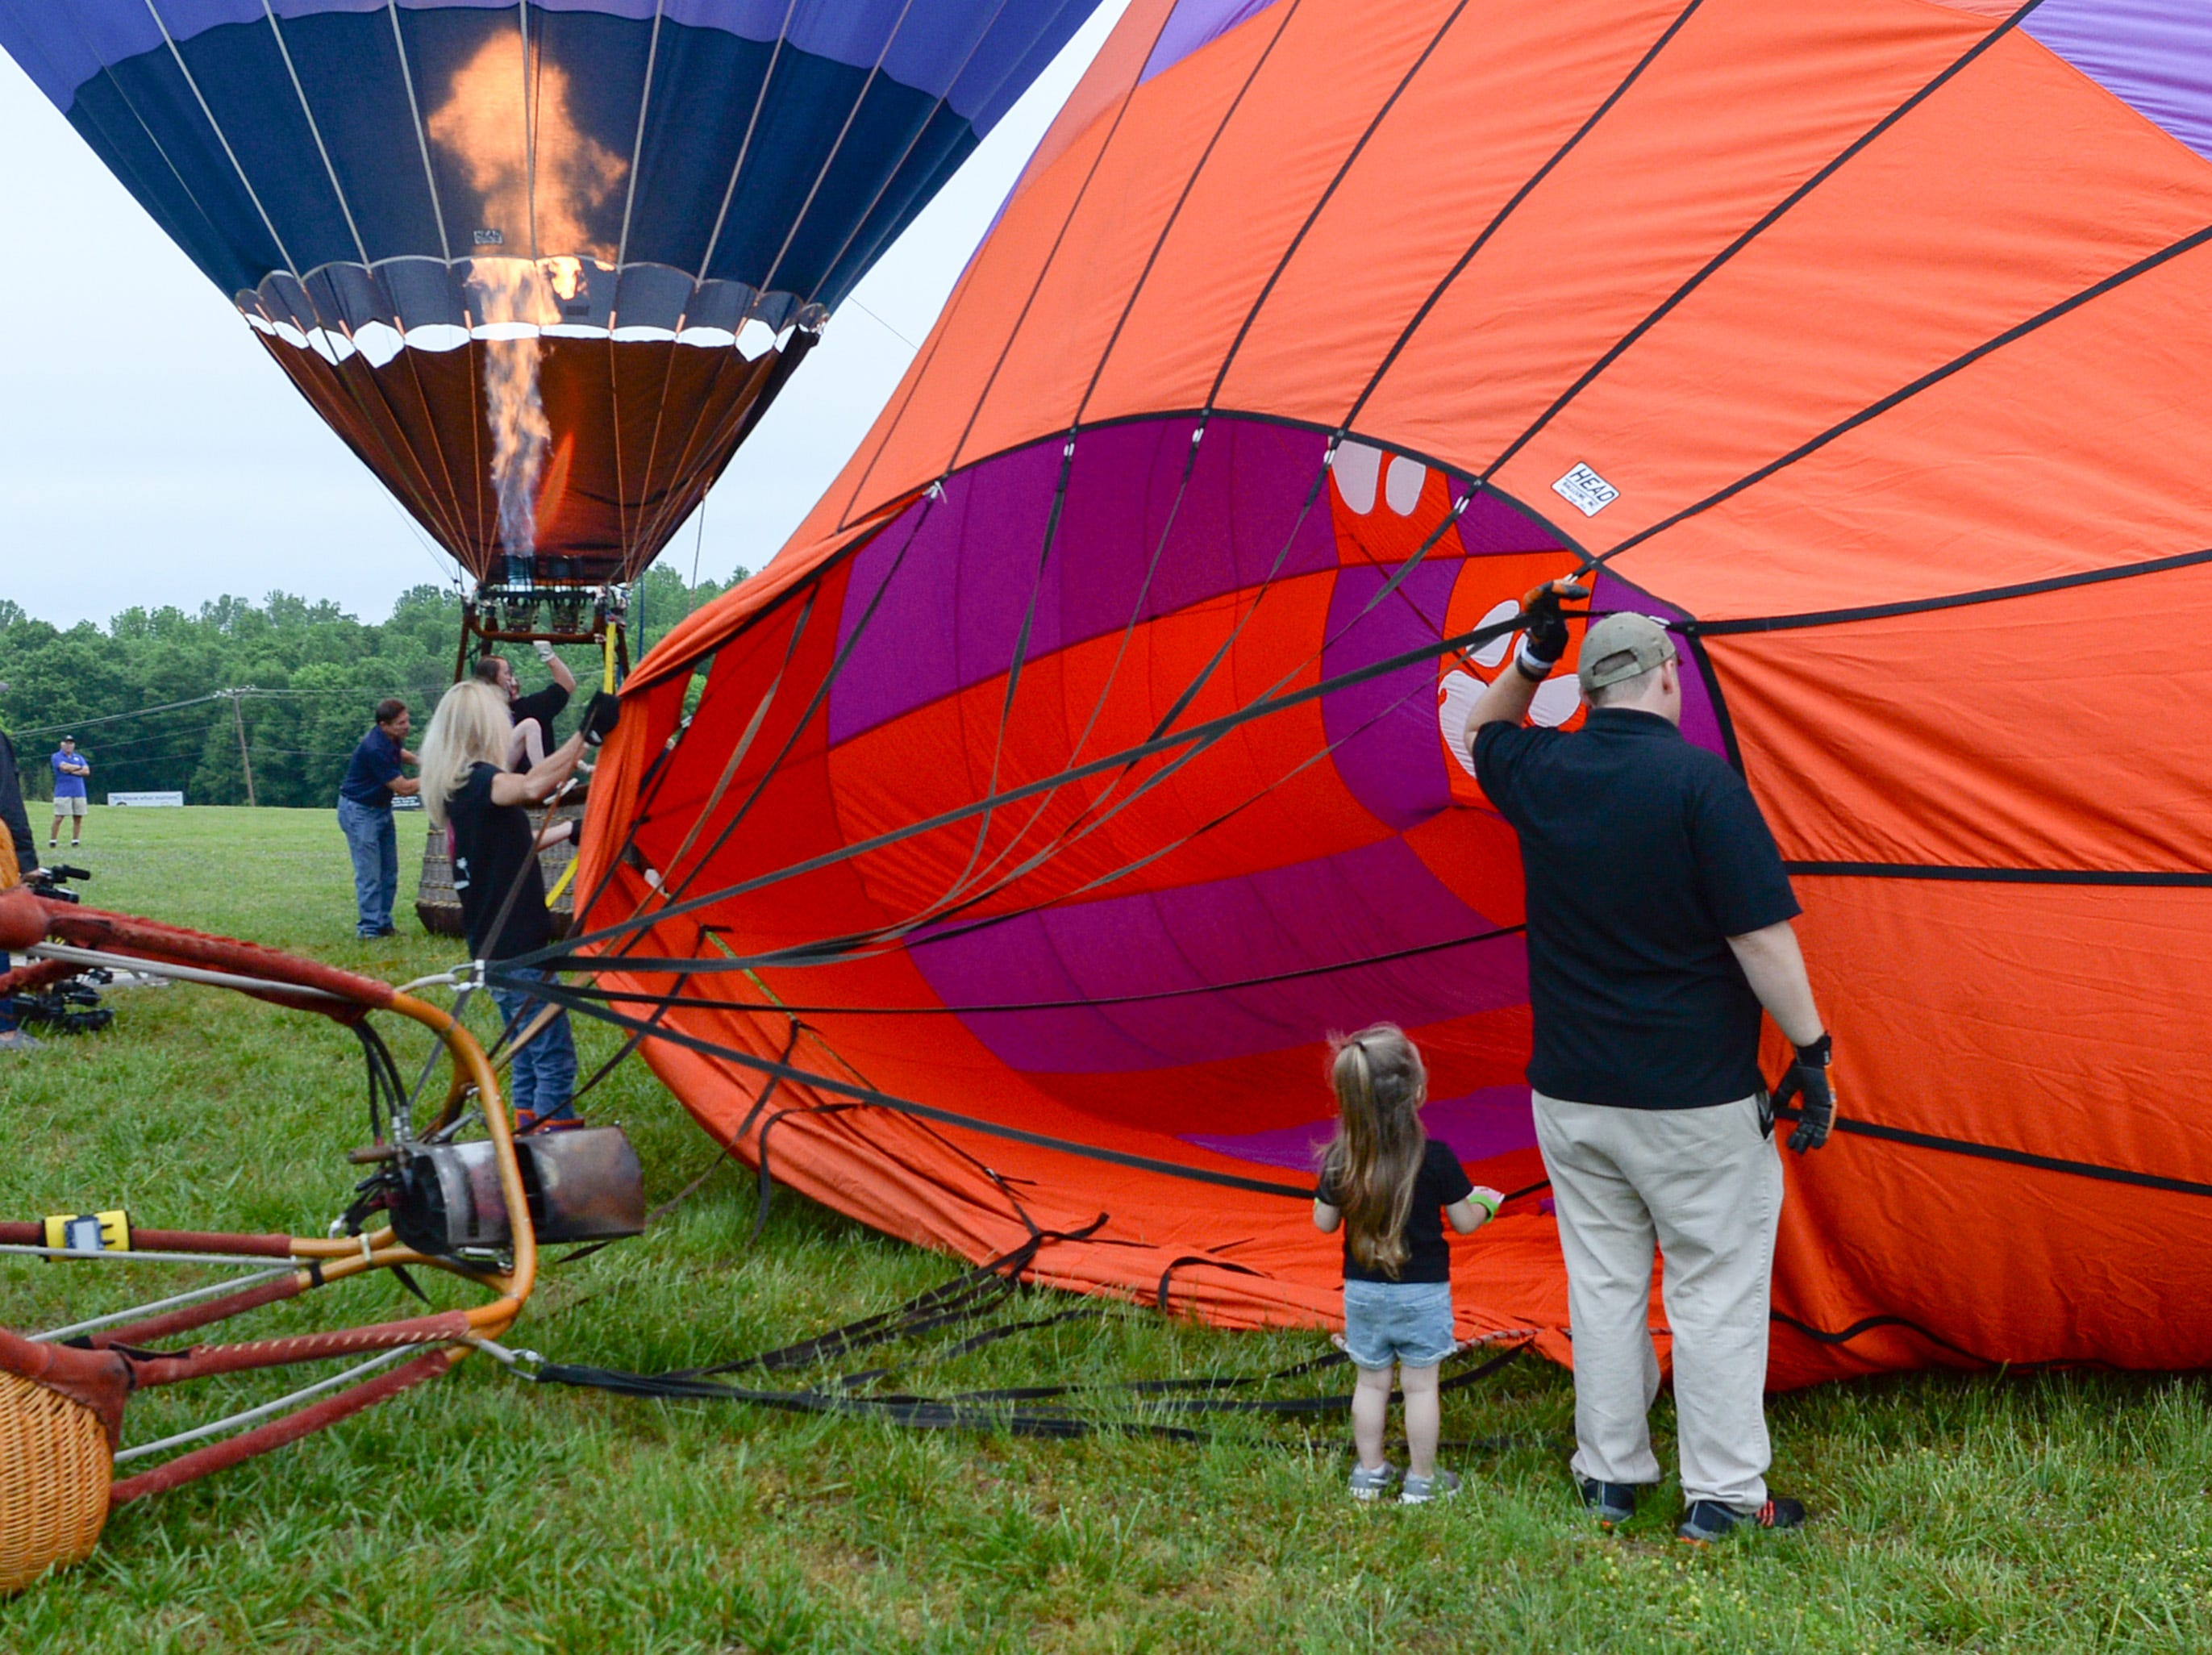 Addy Nelson, 3, left, and her father Braden Nelson of Anderson help inflate the Palmetto Paws hot air balloon before flying over Rocky River Plantation for the Cancer Association of Anderson Hot Air Balloon Affair in Anderson Friday. The event fundraiser helps the non-profit with helping cancer patients with financial needs and support, which the group executive director Angela Stringer said had 5,000 contacts.